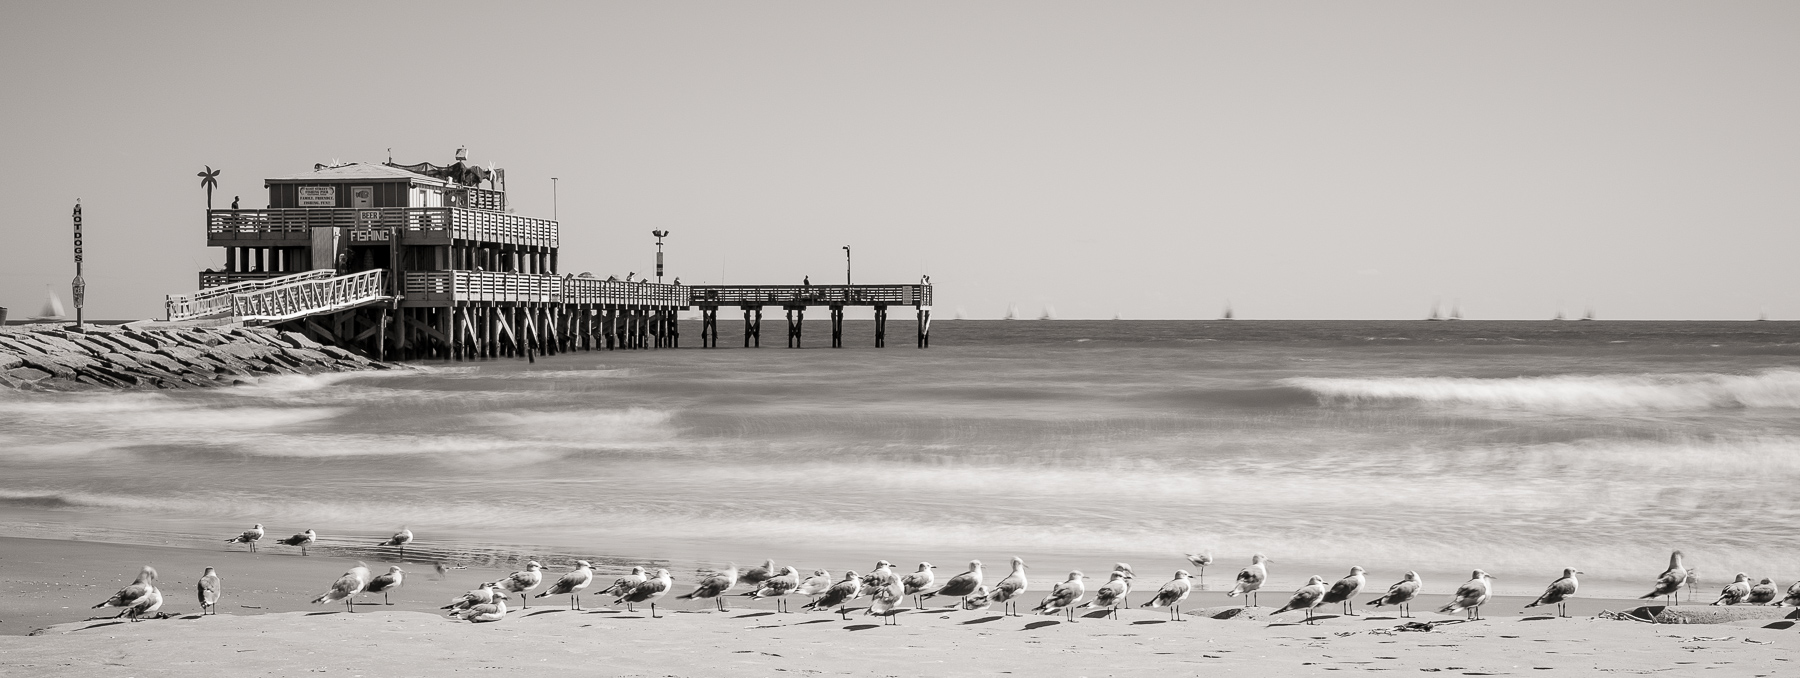 61st Street Pier and Seagulls